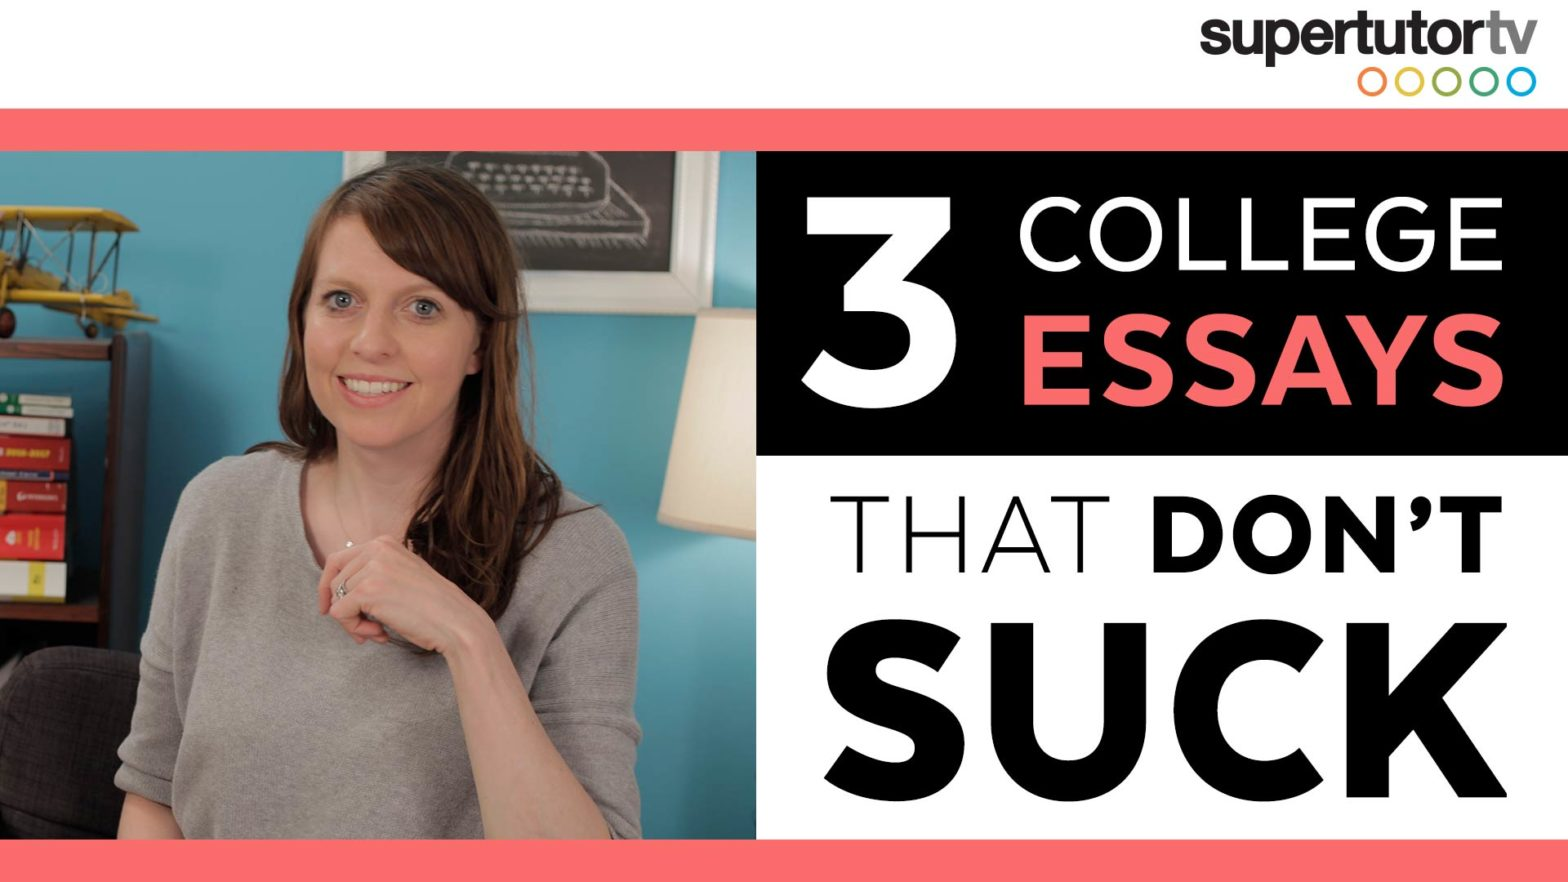 3 College Essays That WORK (and don't suck!): OWN the Common Application Essay